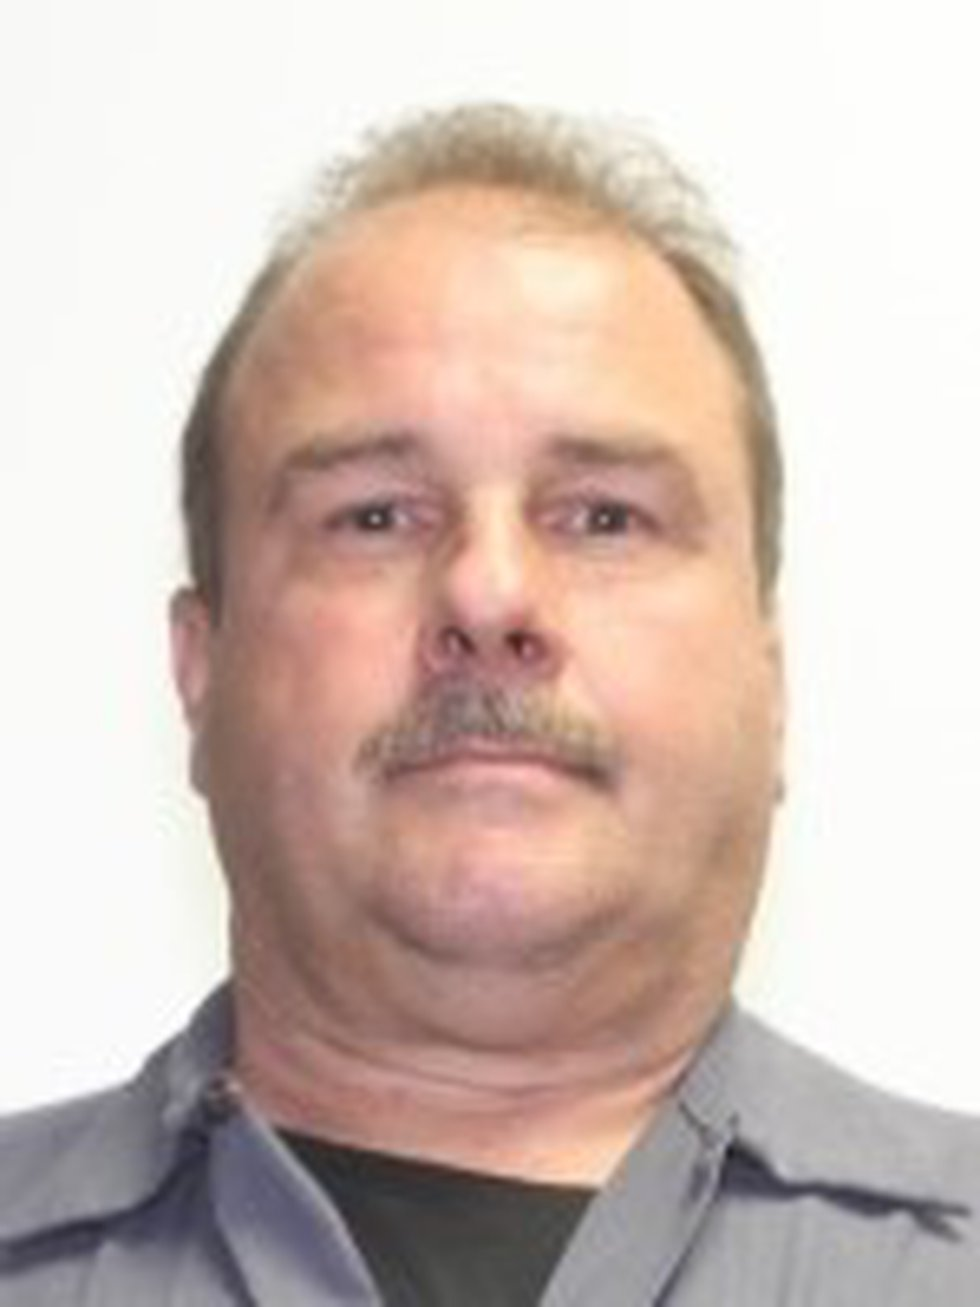 Ken Swope, 56, of Akron was arrested for answering an on-line advertisement offering explicit...